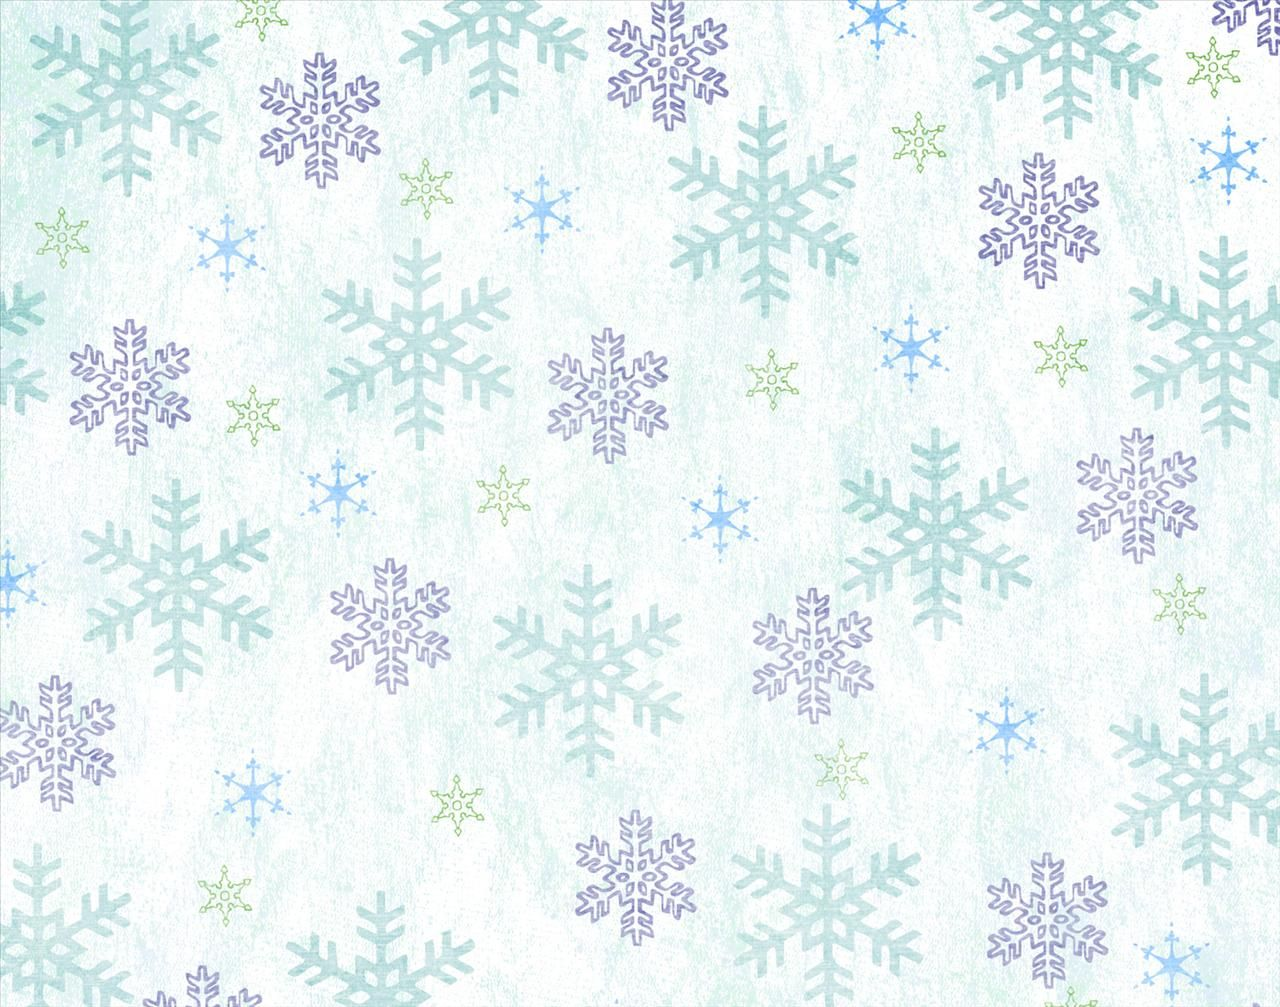 Picaboo Free Backgrounds View Entry Snowflake